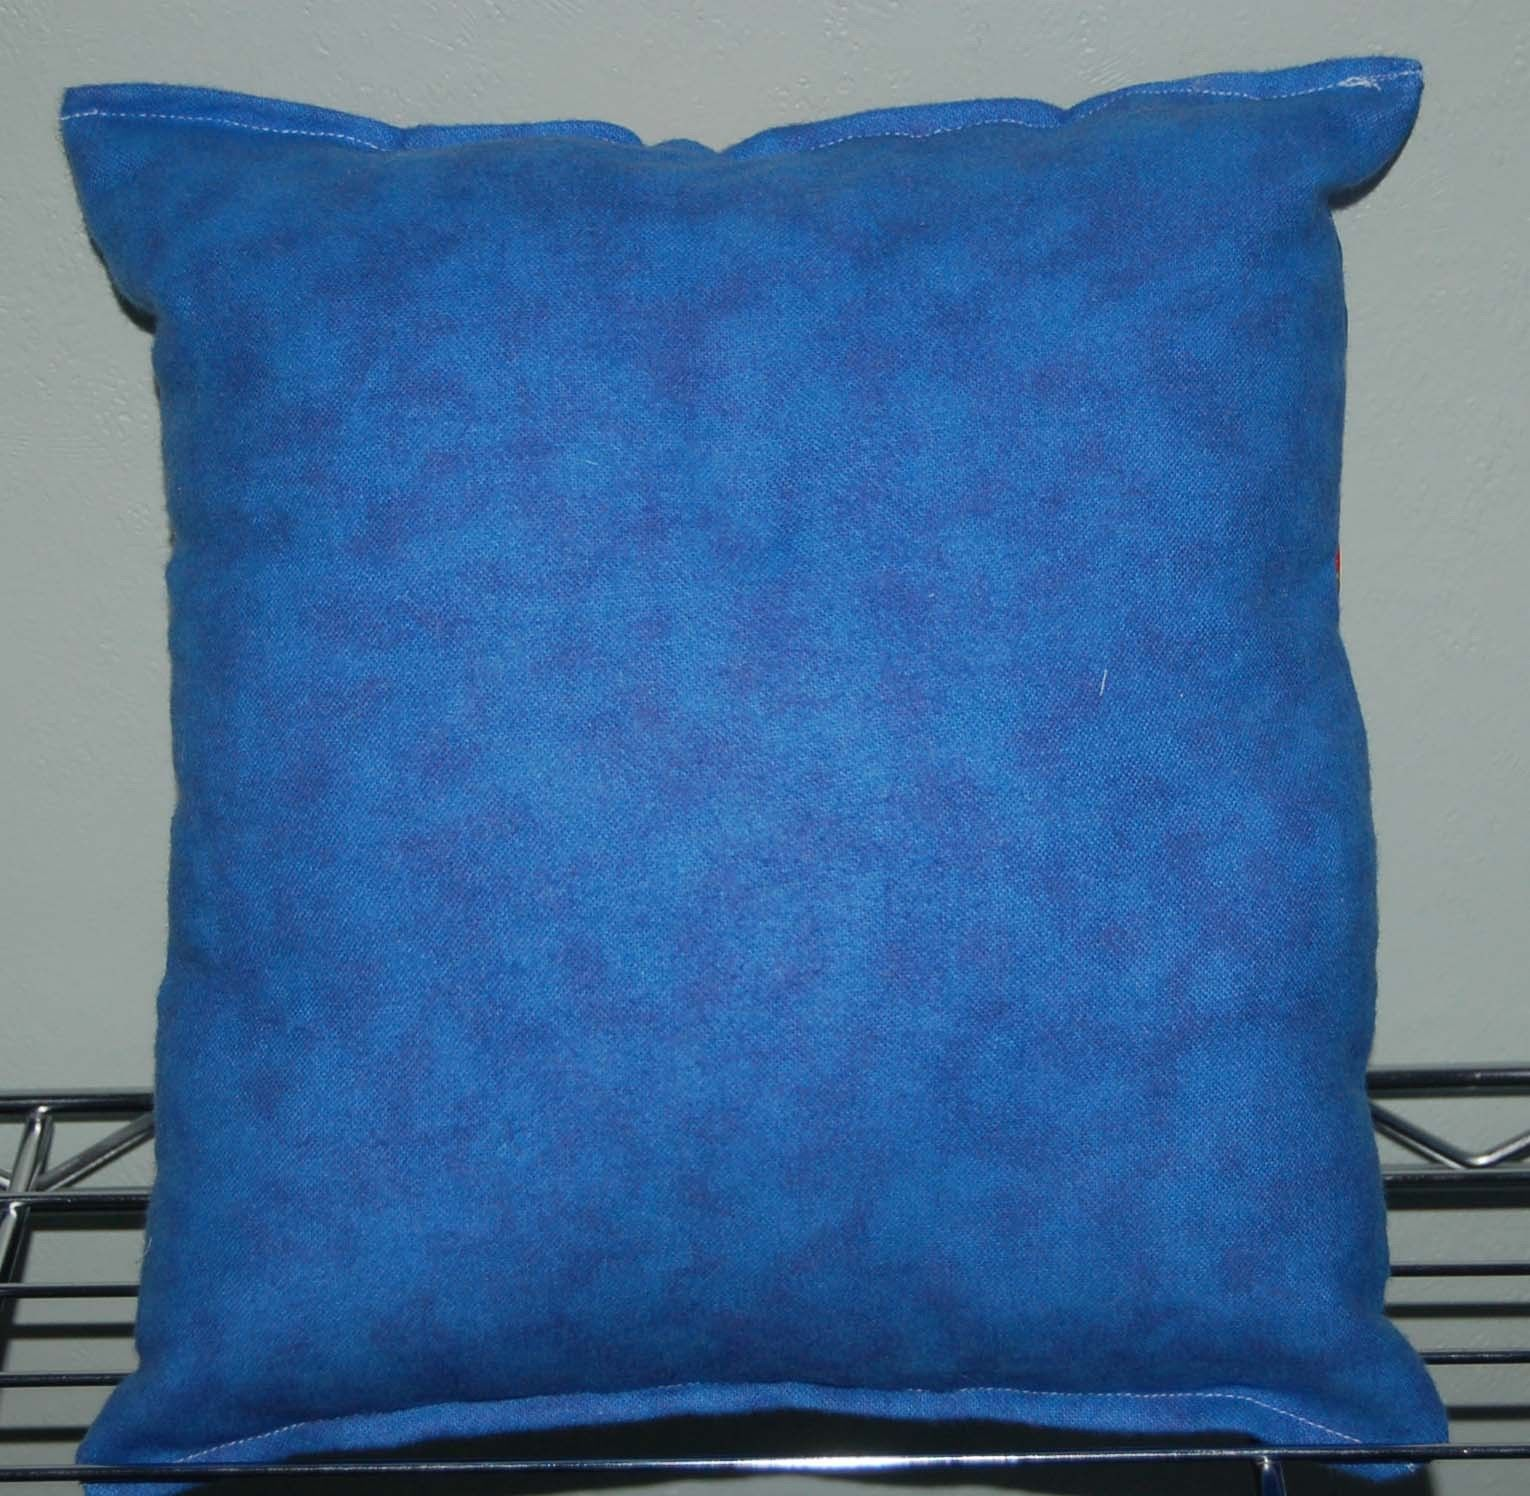 Butterfinger Pillow Nestle Butterfingers Candy Pillow HANDMADE Man Cave Pillow image 2